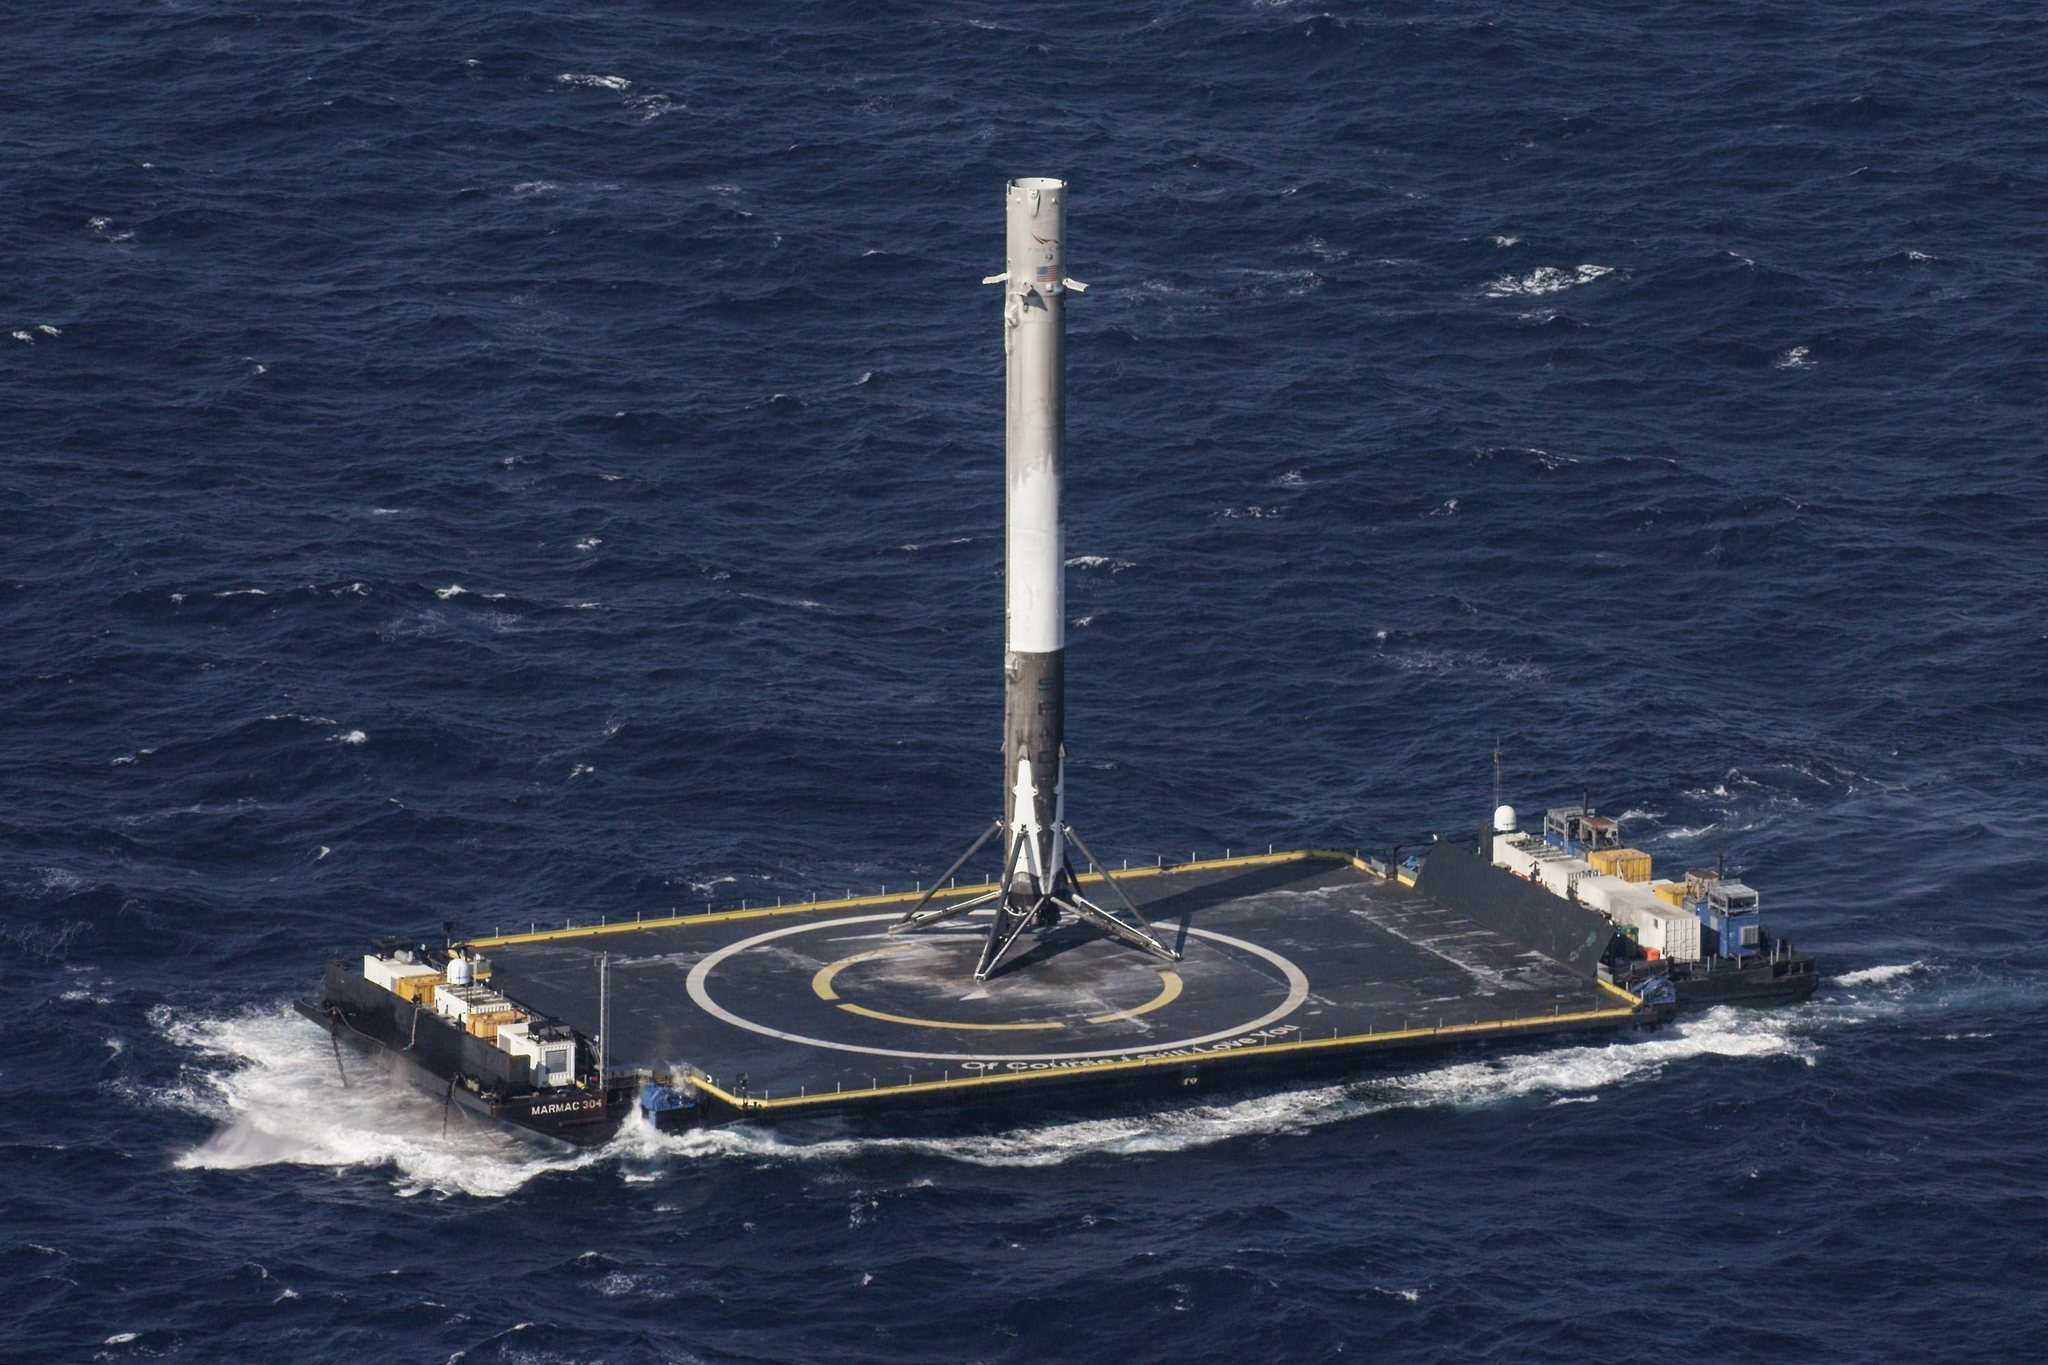 What's next for SpaceX and the Falcon 9 rocket that landed ...